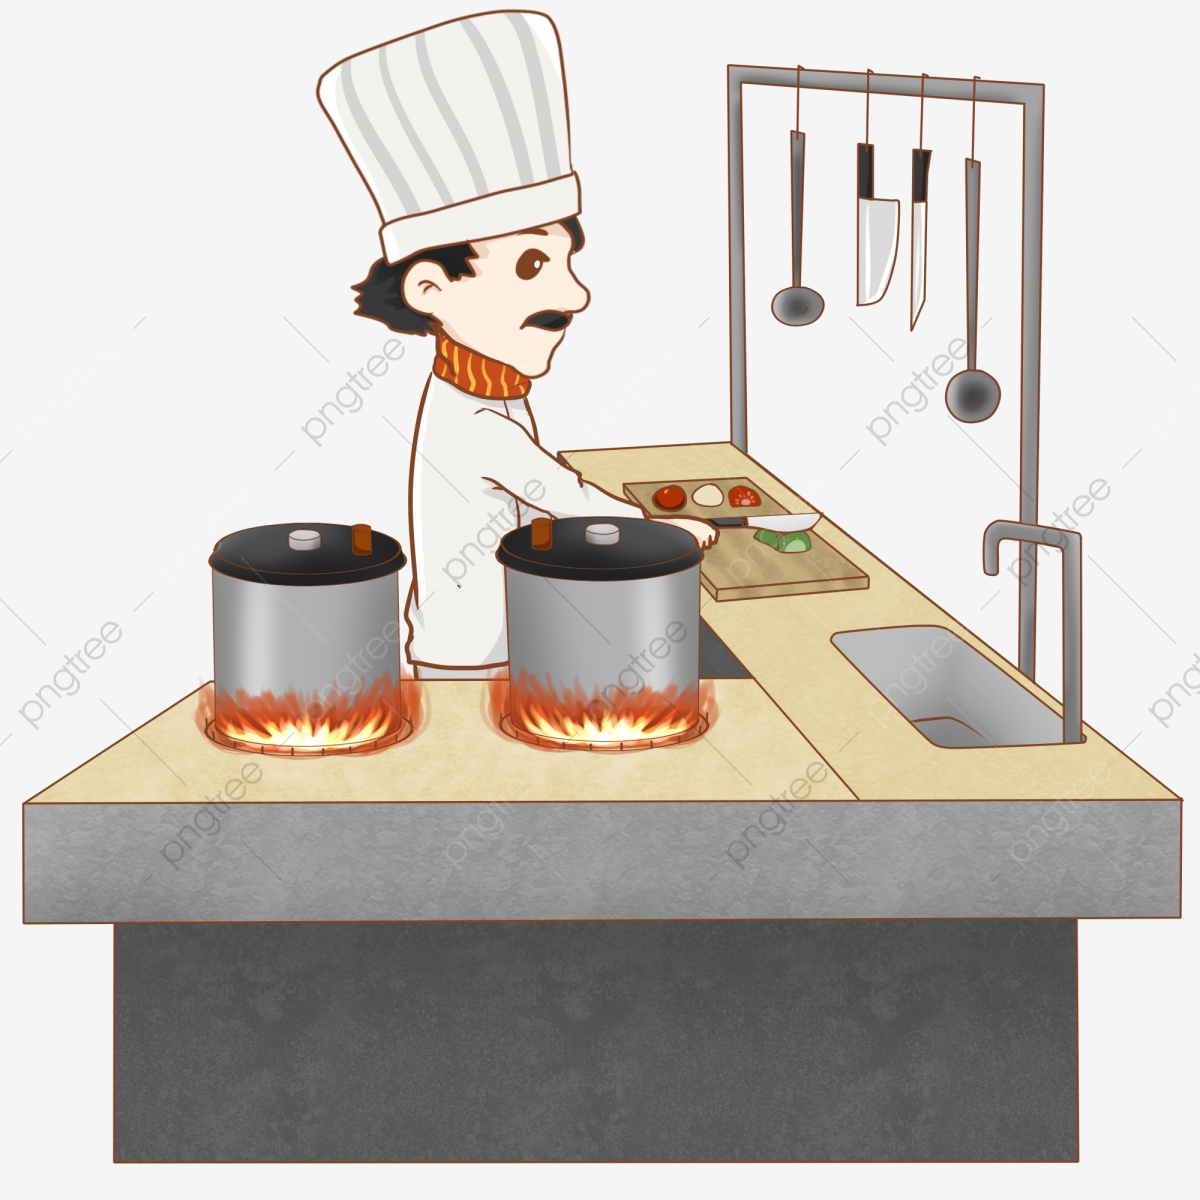 Food Chef Chef Cooking, Illustration, Chef Hat, Cartoon Character.